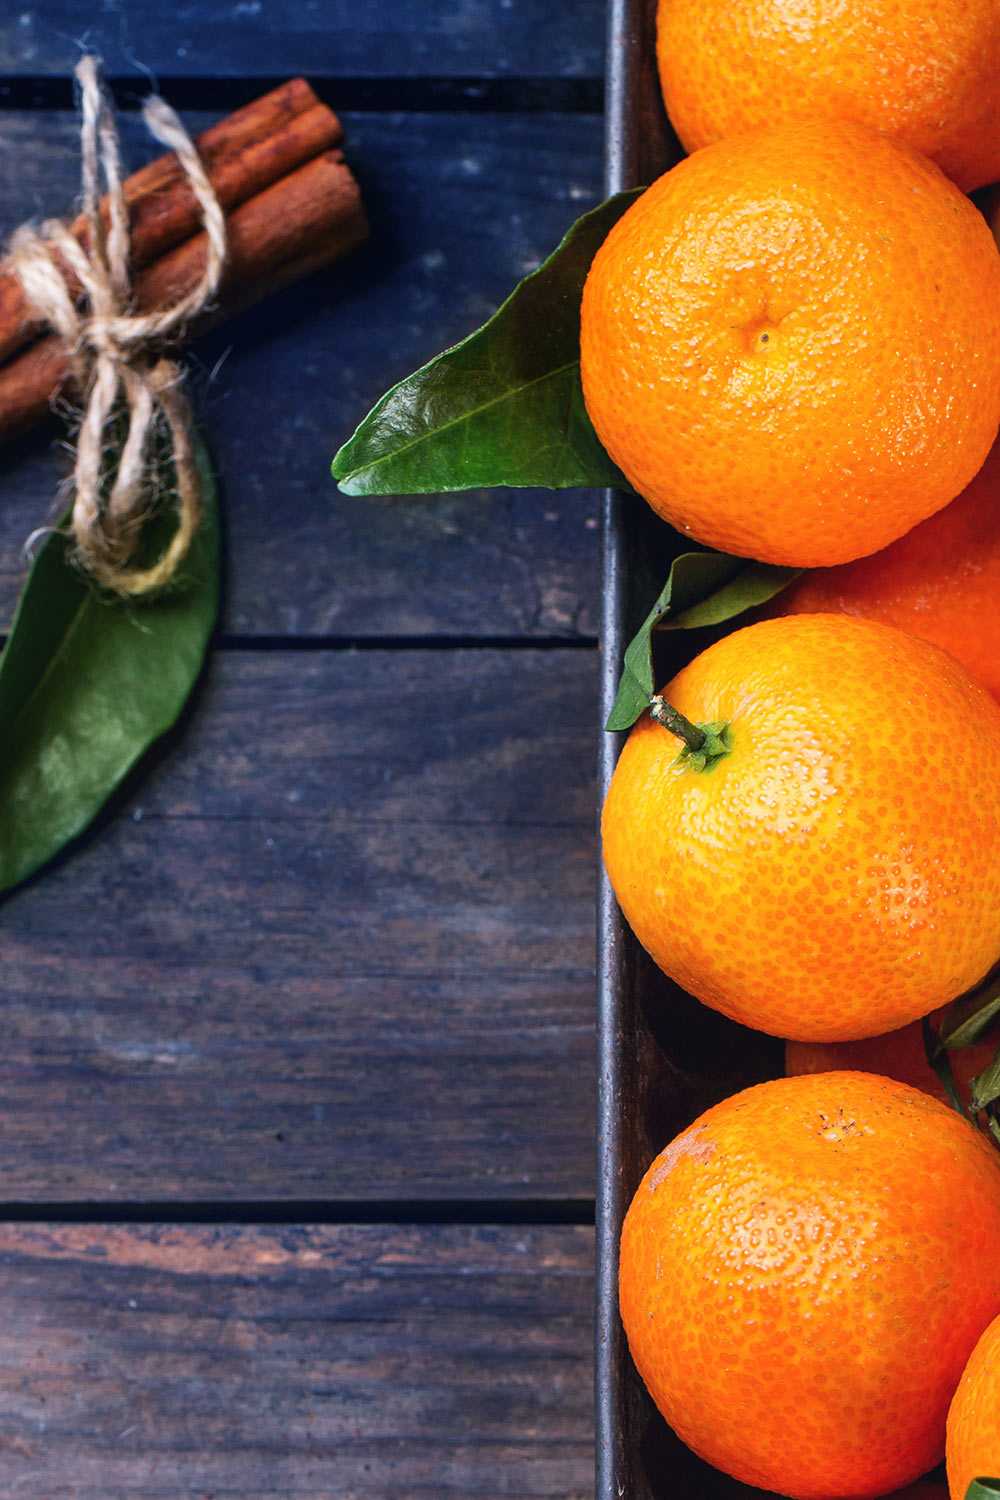 To create a love home aromatherapy smell, add some cinnamon or orange or lemon peels to a pan of water and vinegar, let boil. It will fill your home with a lovely scent.